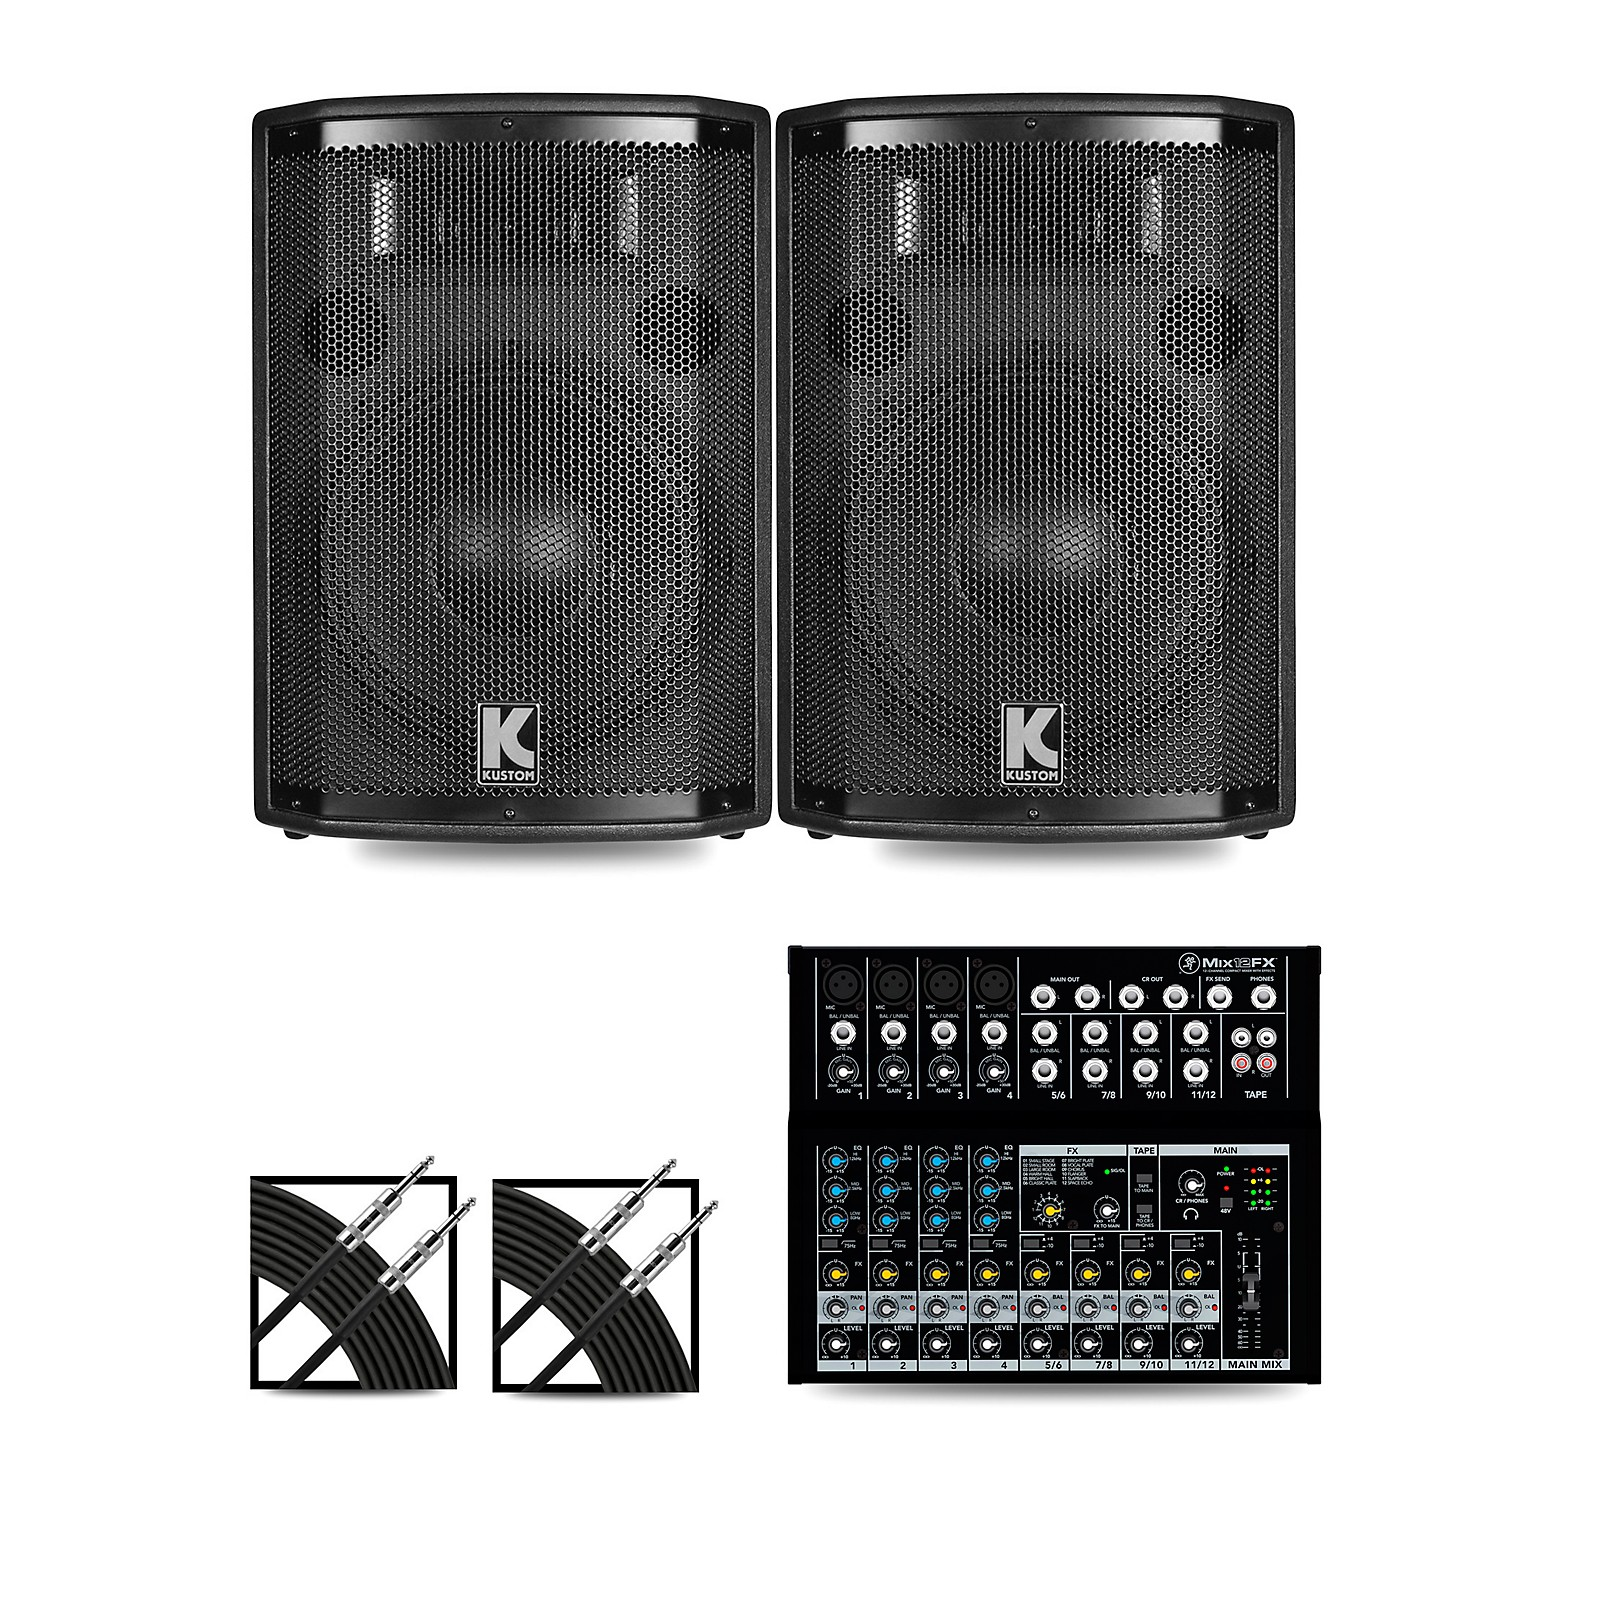 Mackie Mix12FX Mixer and Kustom HiPAC Speakers